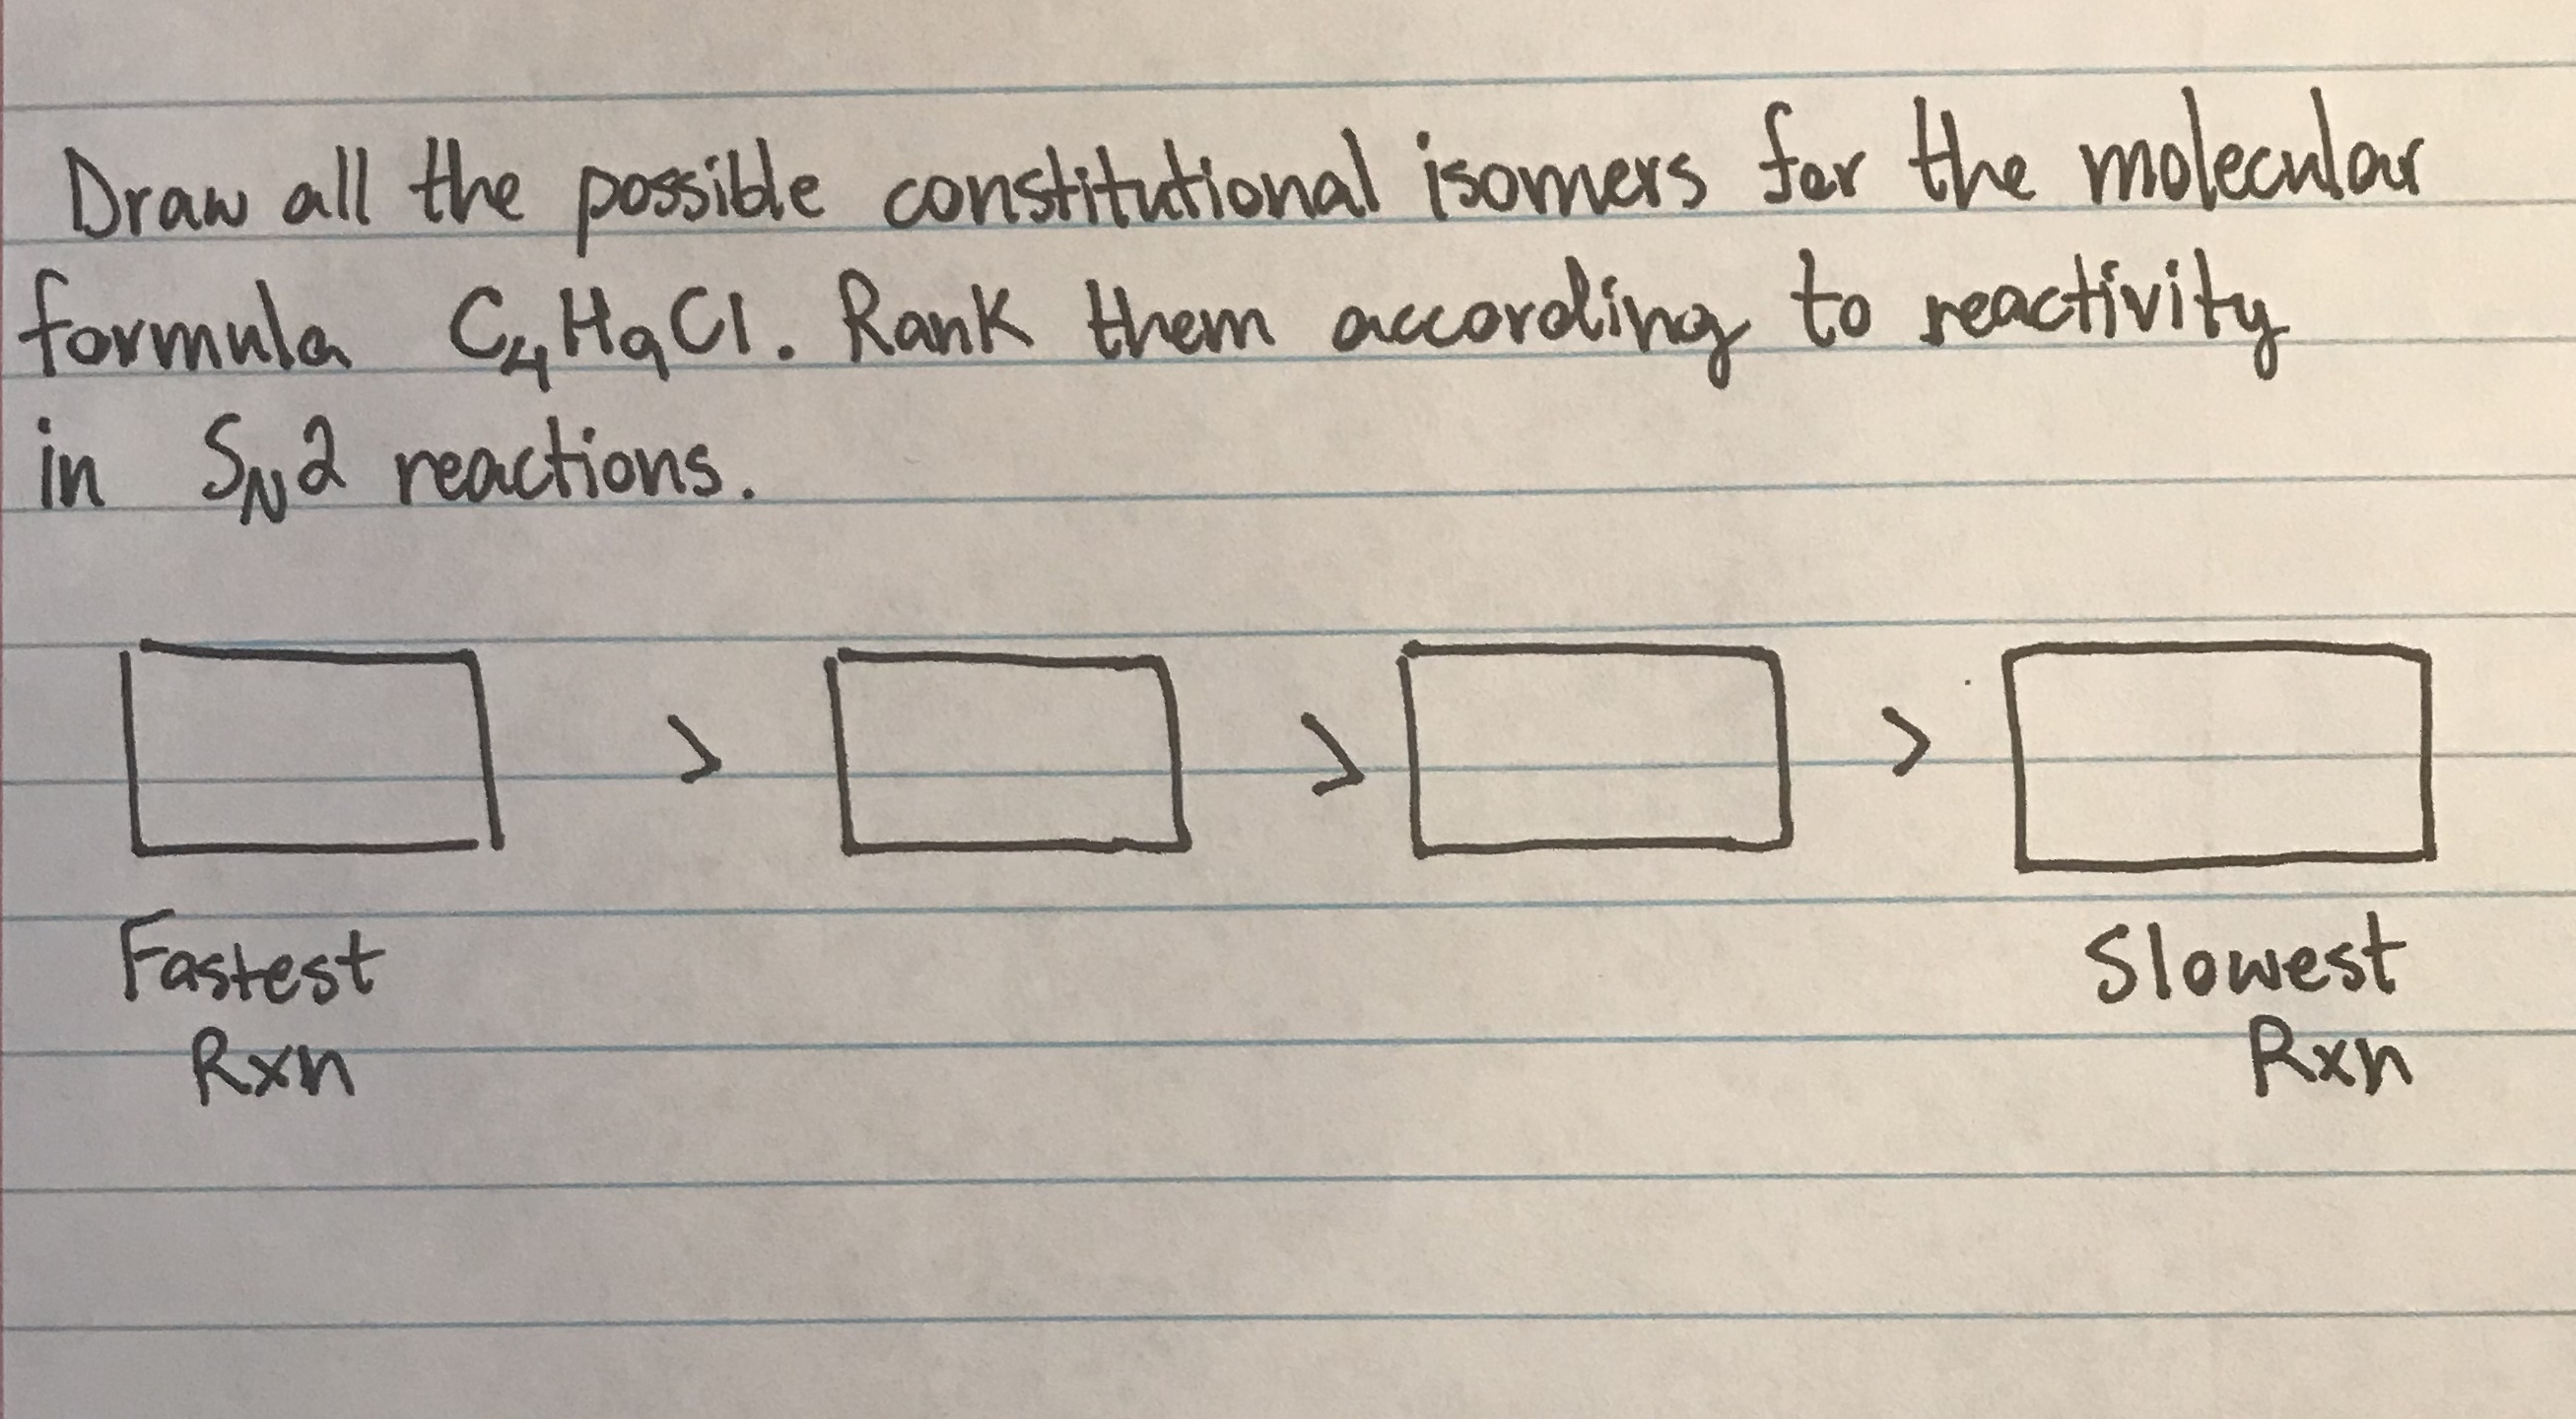 Draw all the posside constitutional isomers for the molecular formula C HaCI. Rank them acording in Sya reactions. to reactivity Slowest Rxn Fastest Rxn